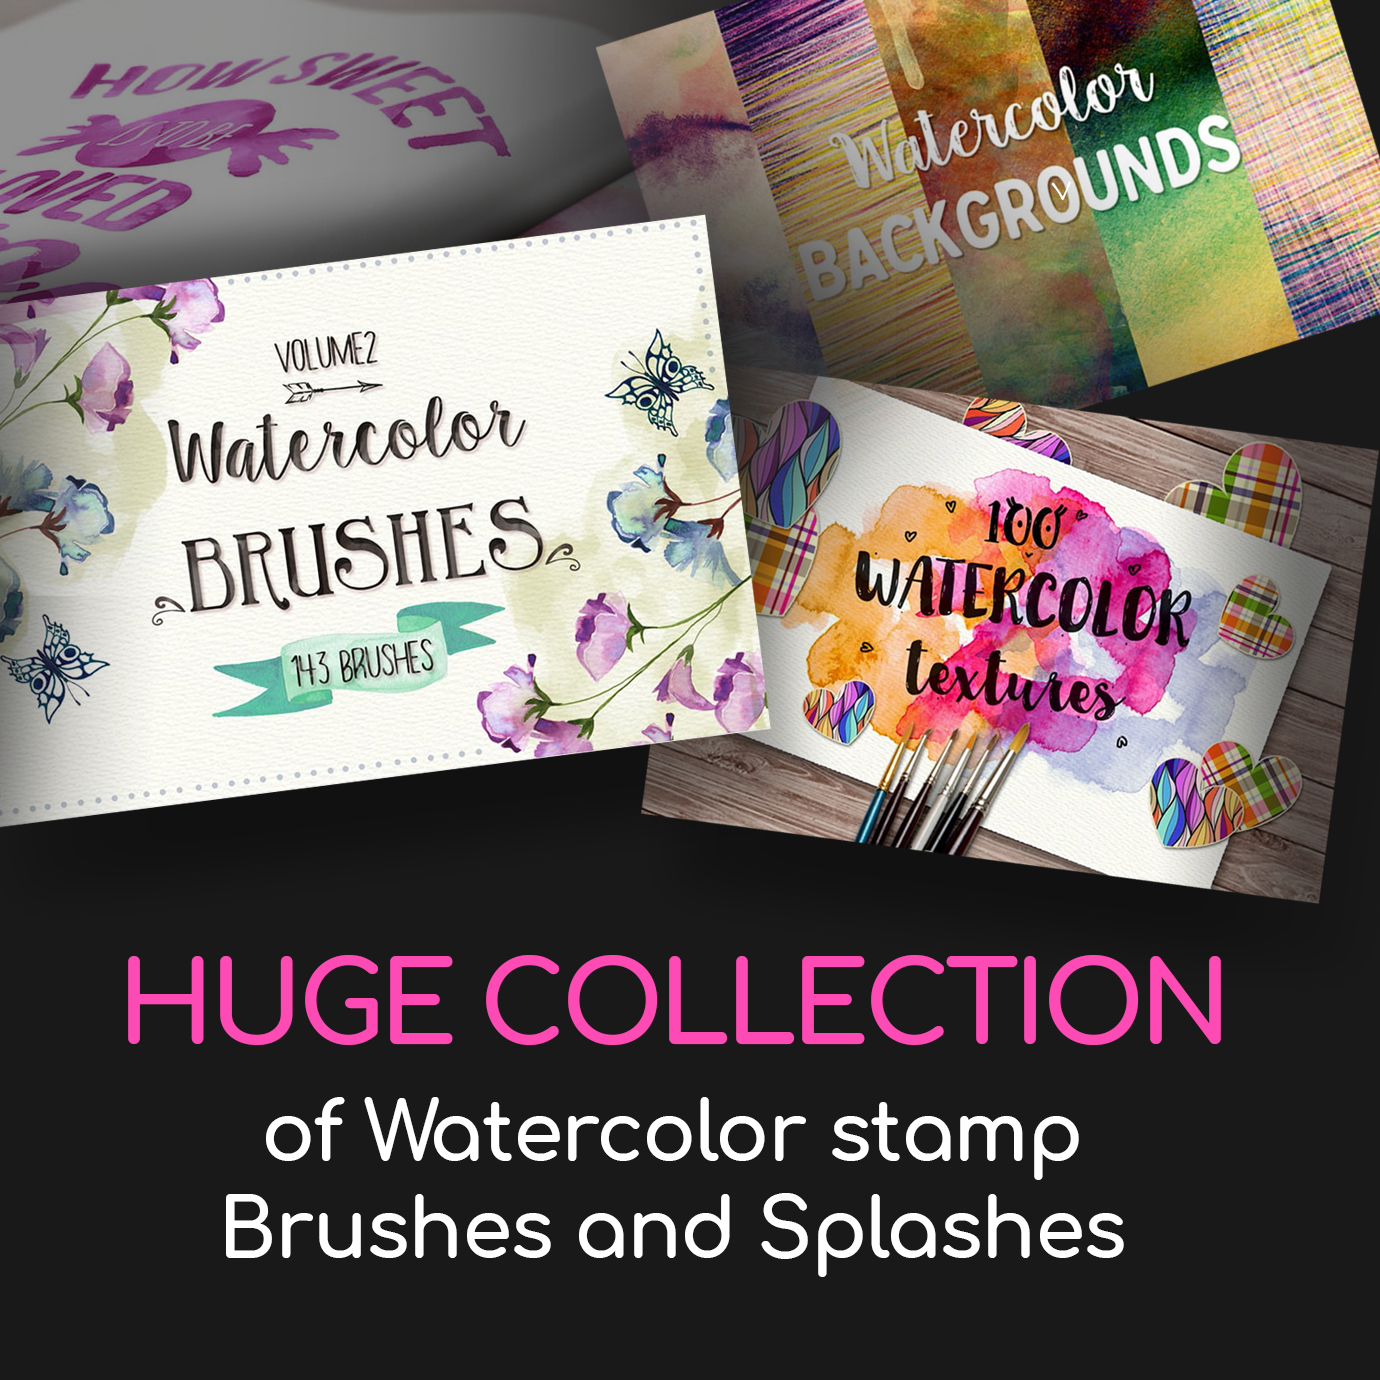 Huge Collection of Watercolor stamp Brushes and Splashes